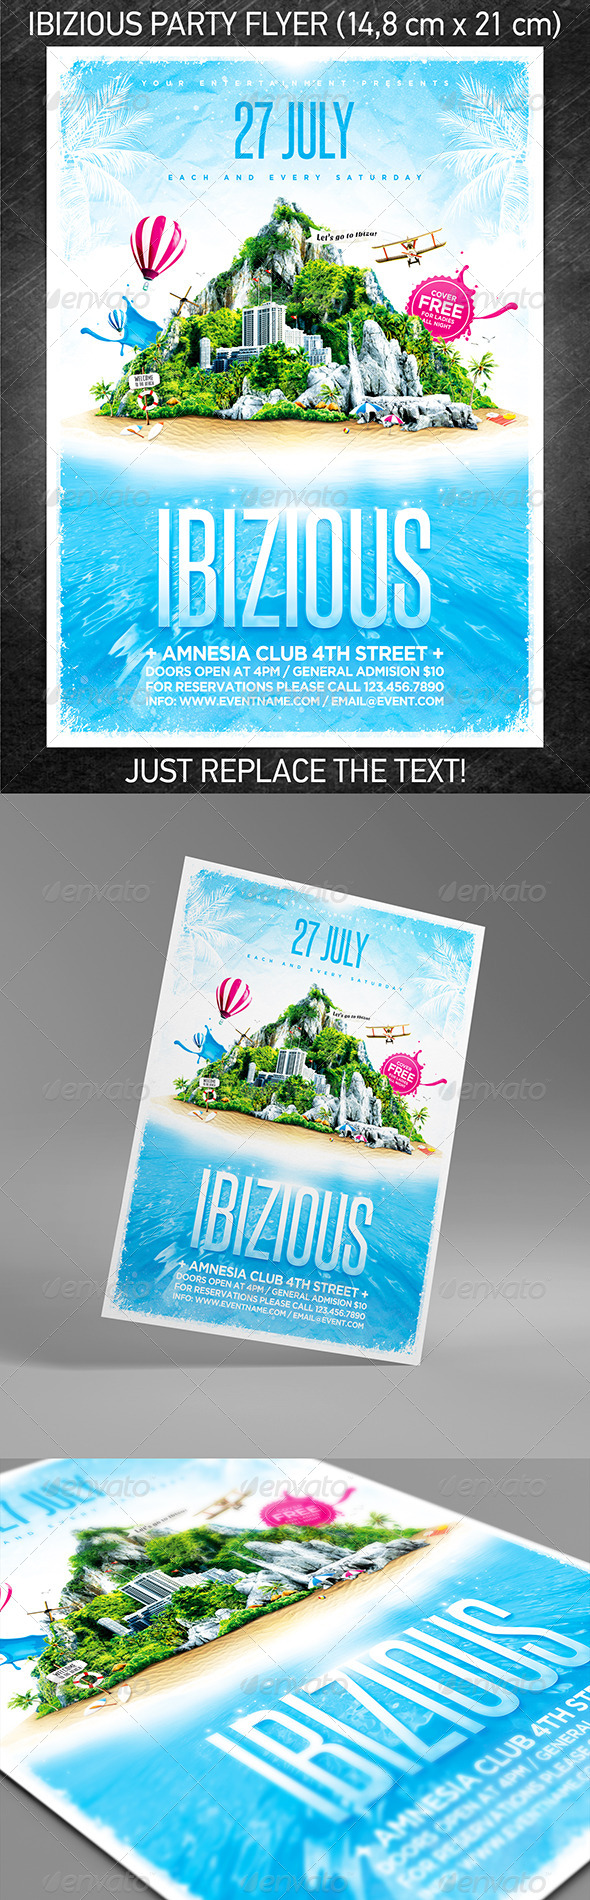 GraphicRiver Ibizious party flyer 4967711